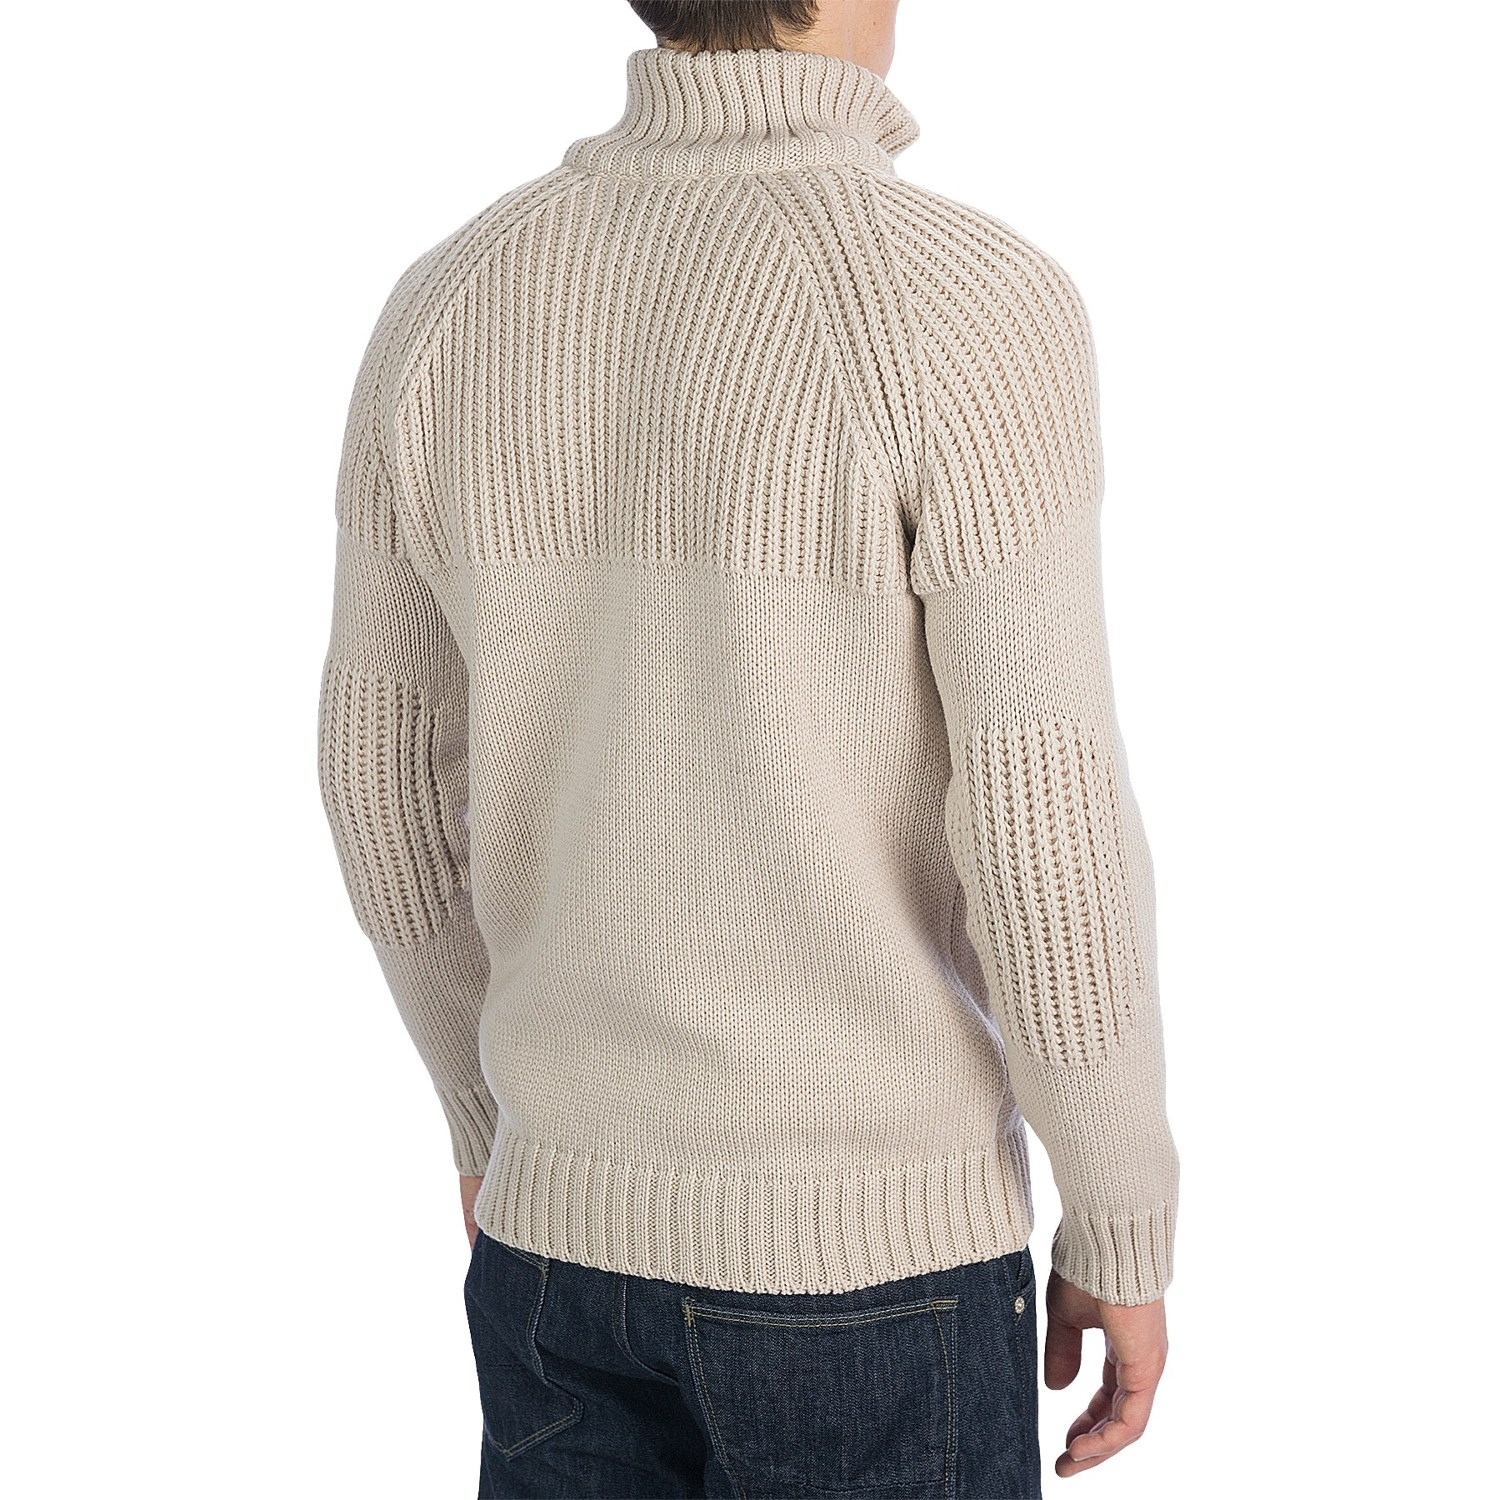 Mens Wool Sweaters. These days, wool has made its way into a variety of different types of kejal-2191.tk known for its anti-bacterial properties and ability to help maintain warmth even when wet, a large number of fashion designers have embraced this natural fiber in their clothing lines.